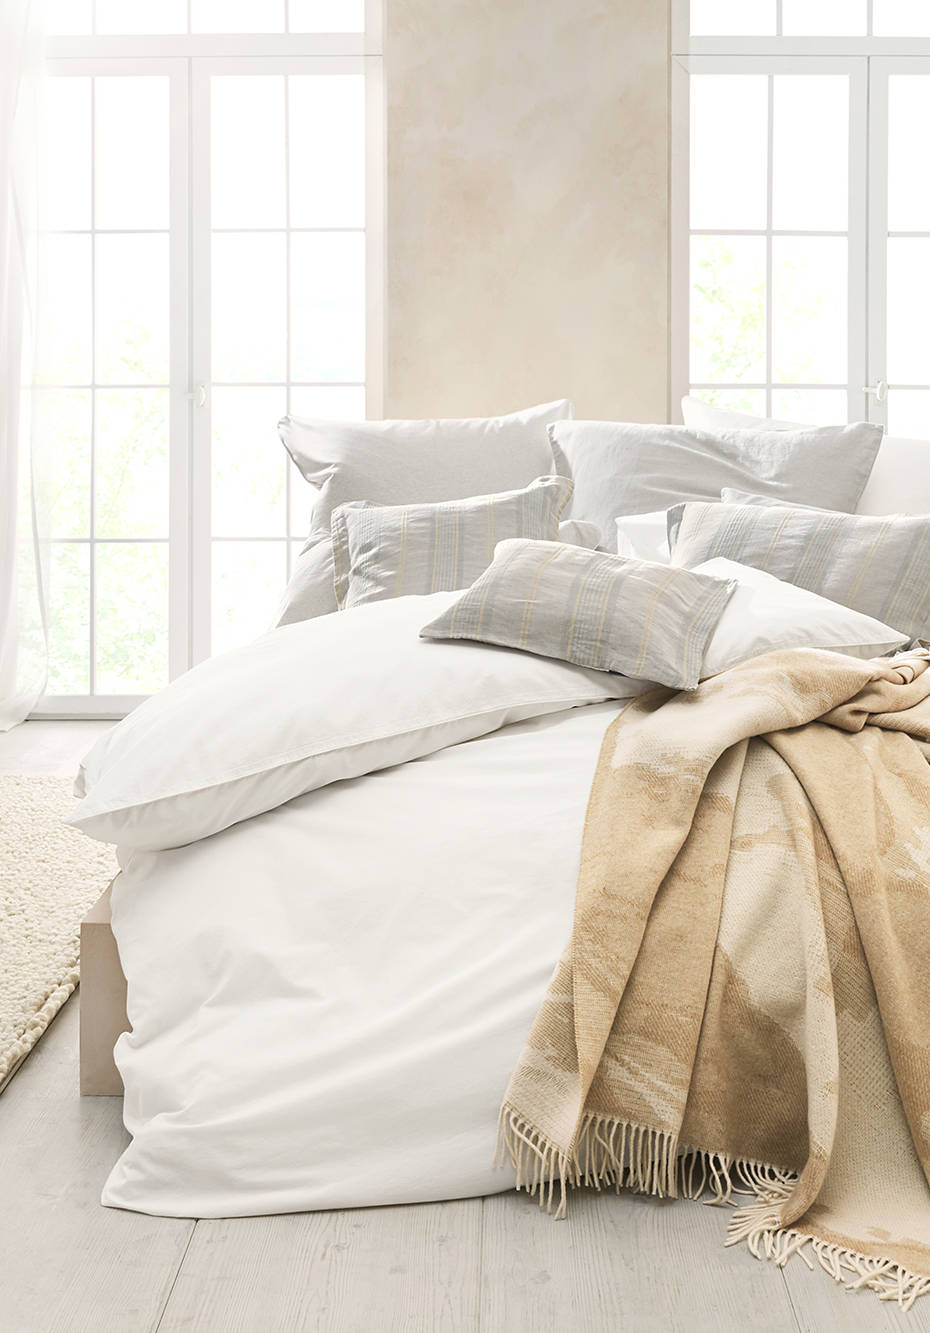 Percale bed linen made from pure organic cotton